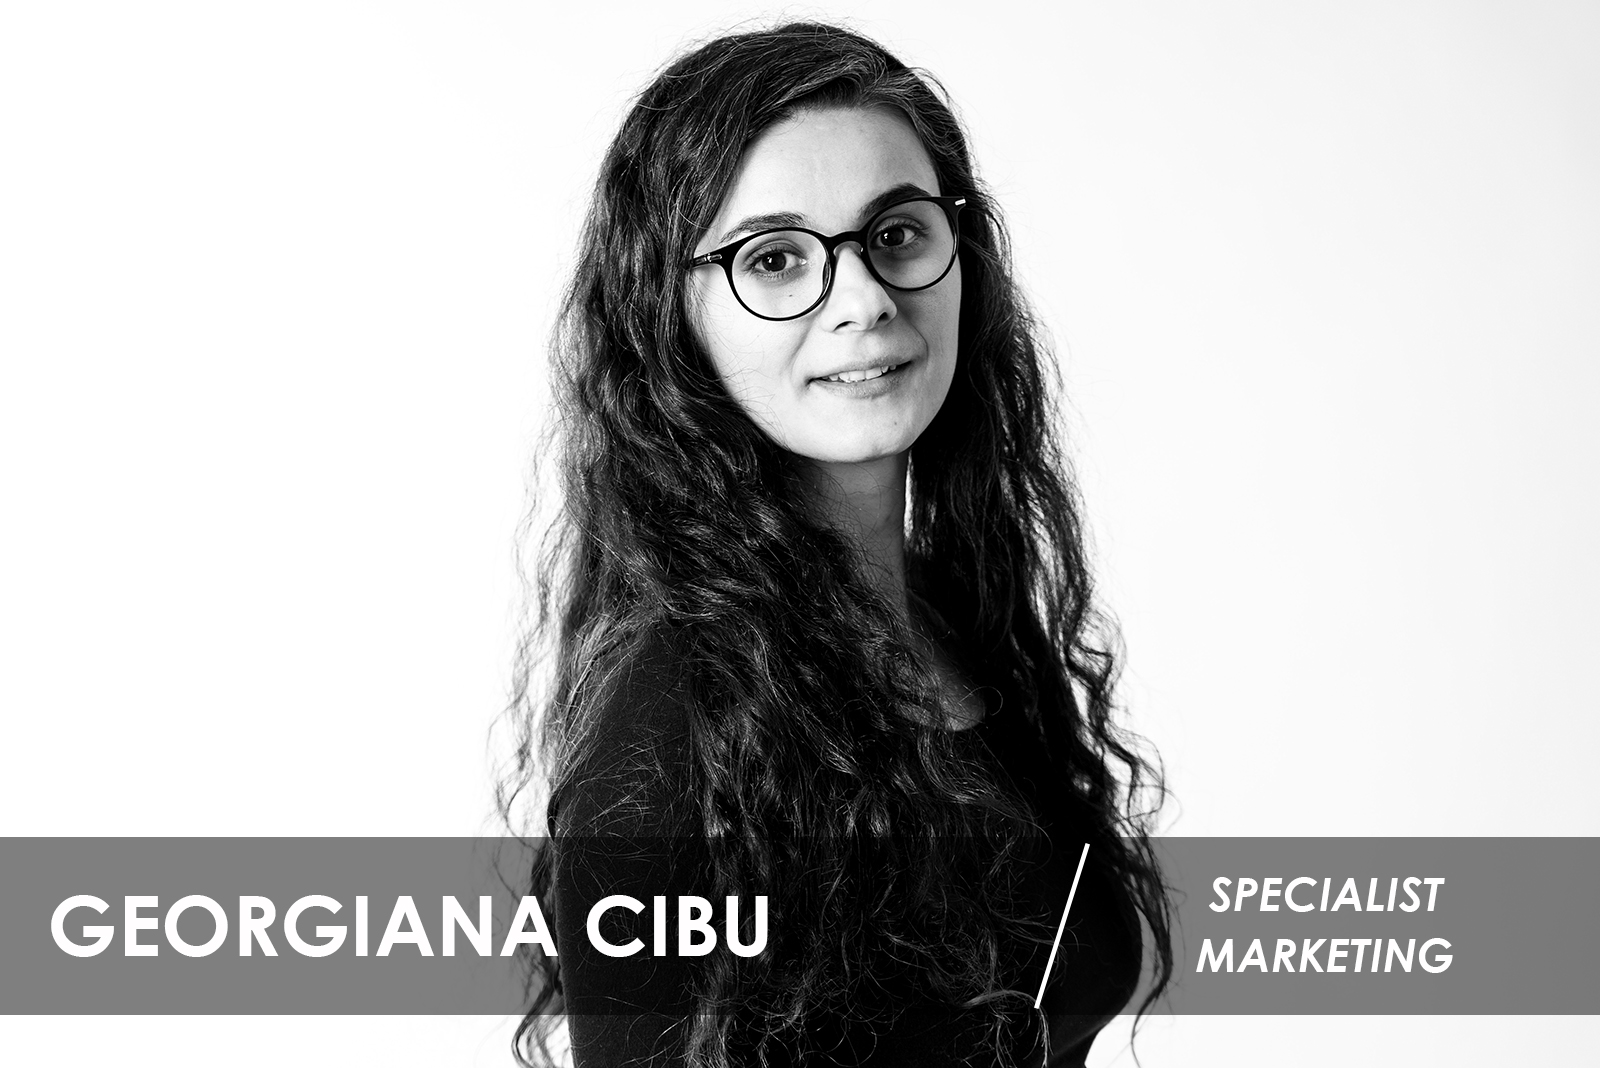 GEORGIANA CIBU